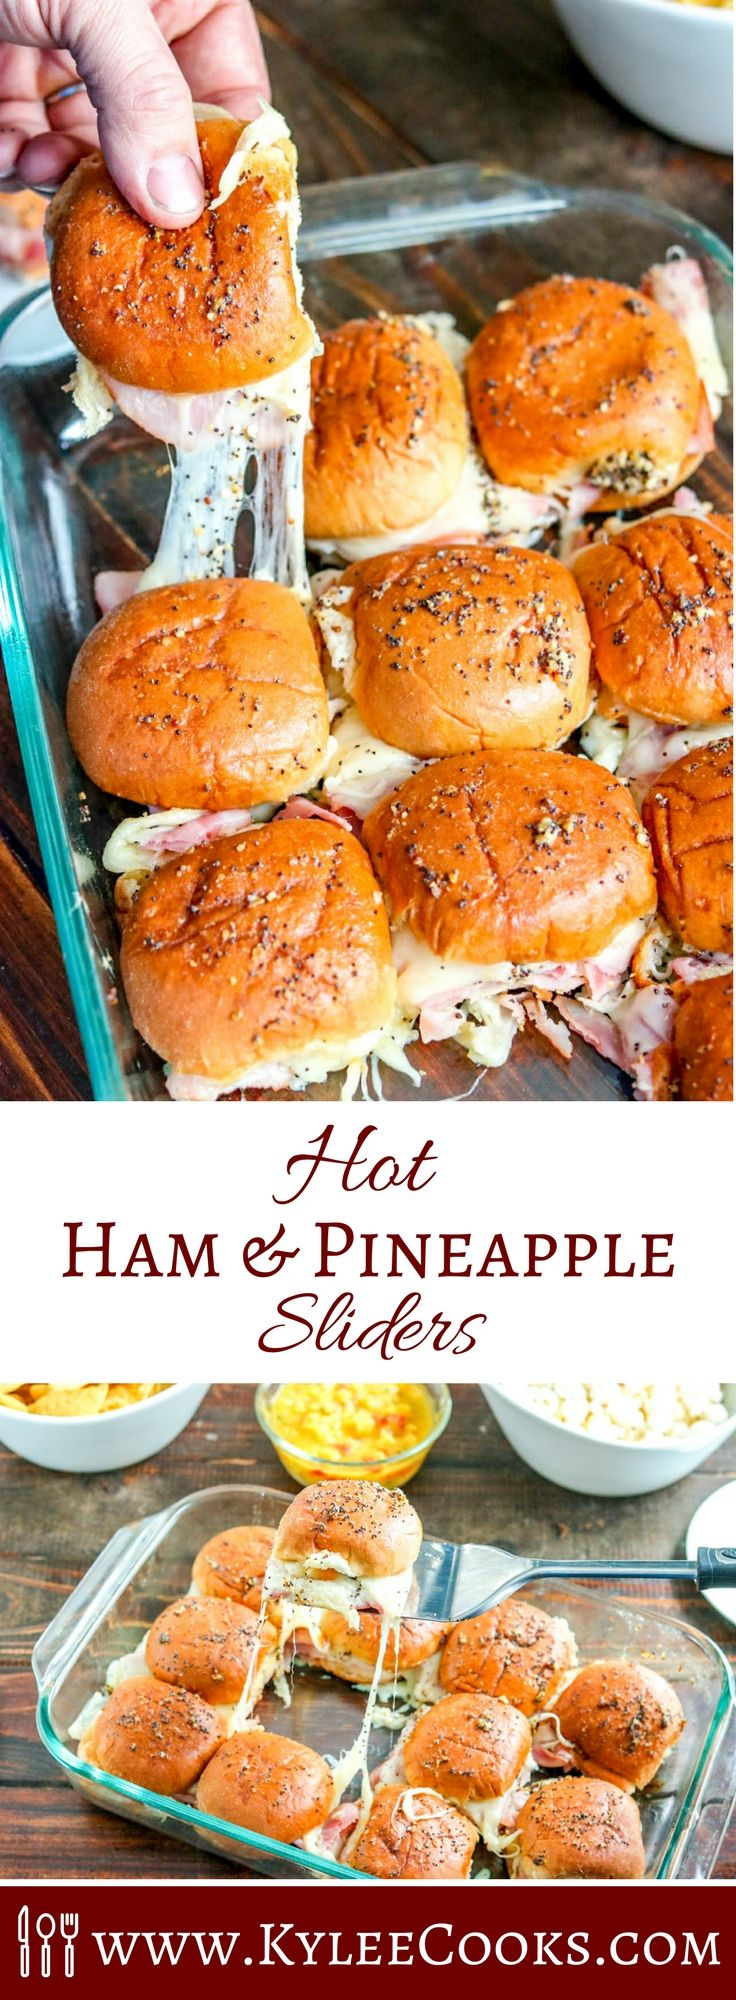 These EASY hot Ham and Pineapple Sliders are PERFECT for game day. Make a double batch to feed a crowd!   #ad #RespectTheBun #LittleBunsBigWin #BakedWithCare @PepperidgeFarm via @kyleecooks